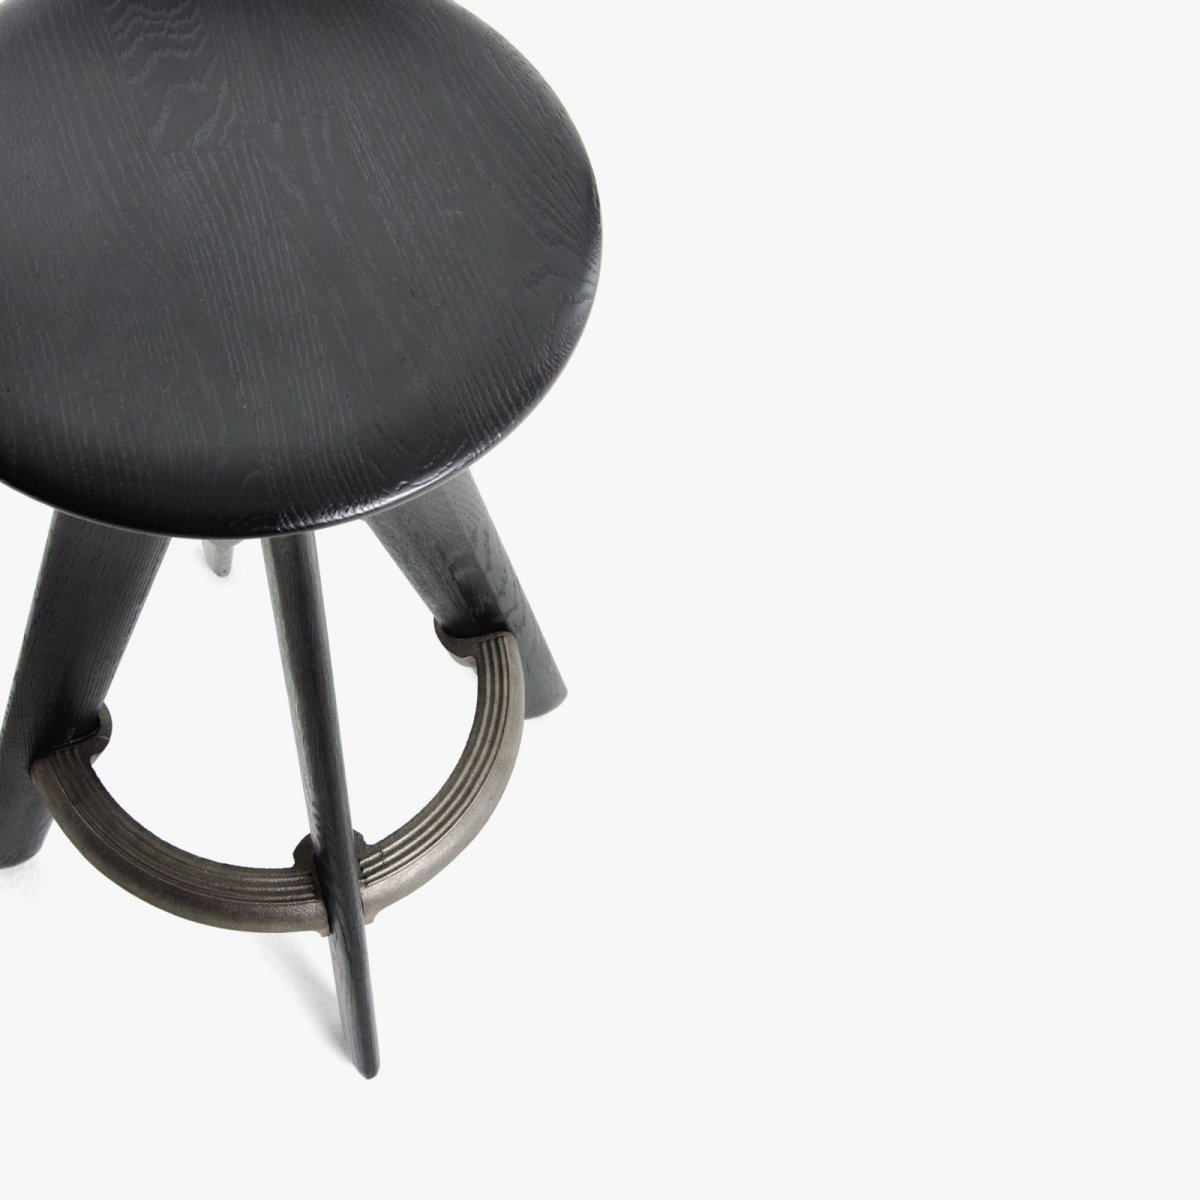 Slab Bar Stool, black, detail top view.